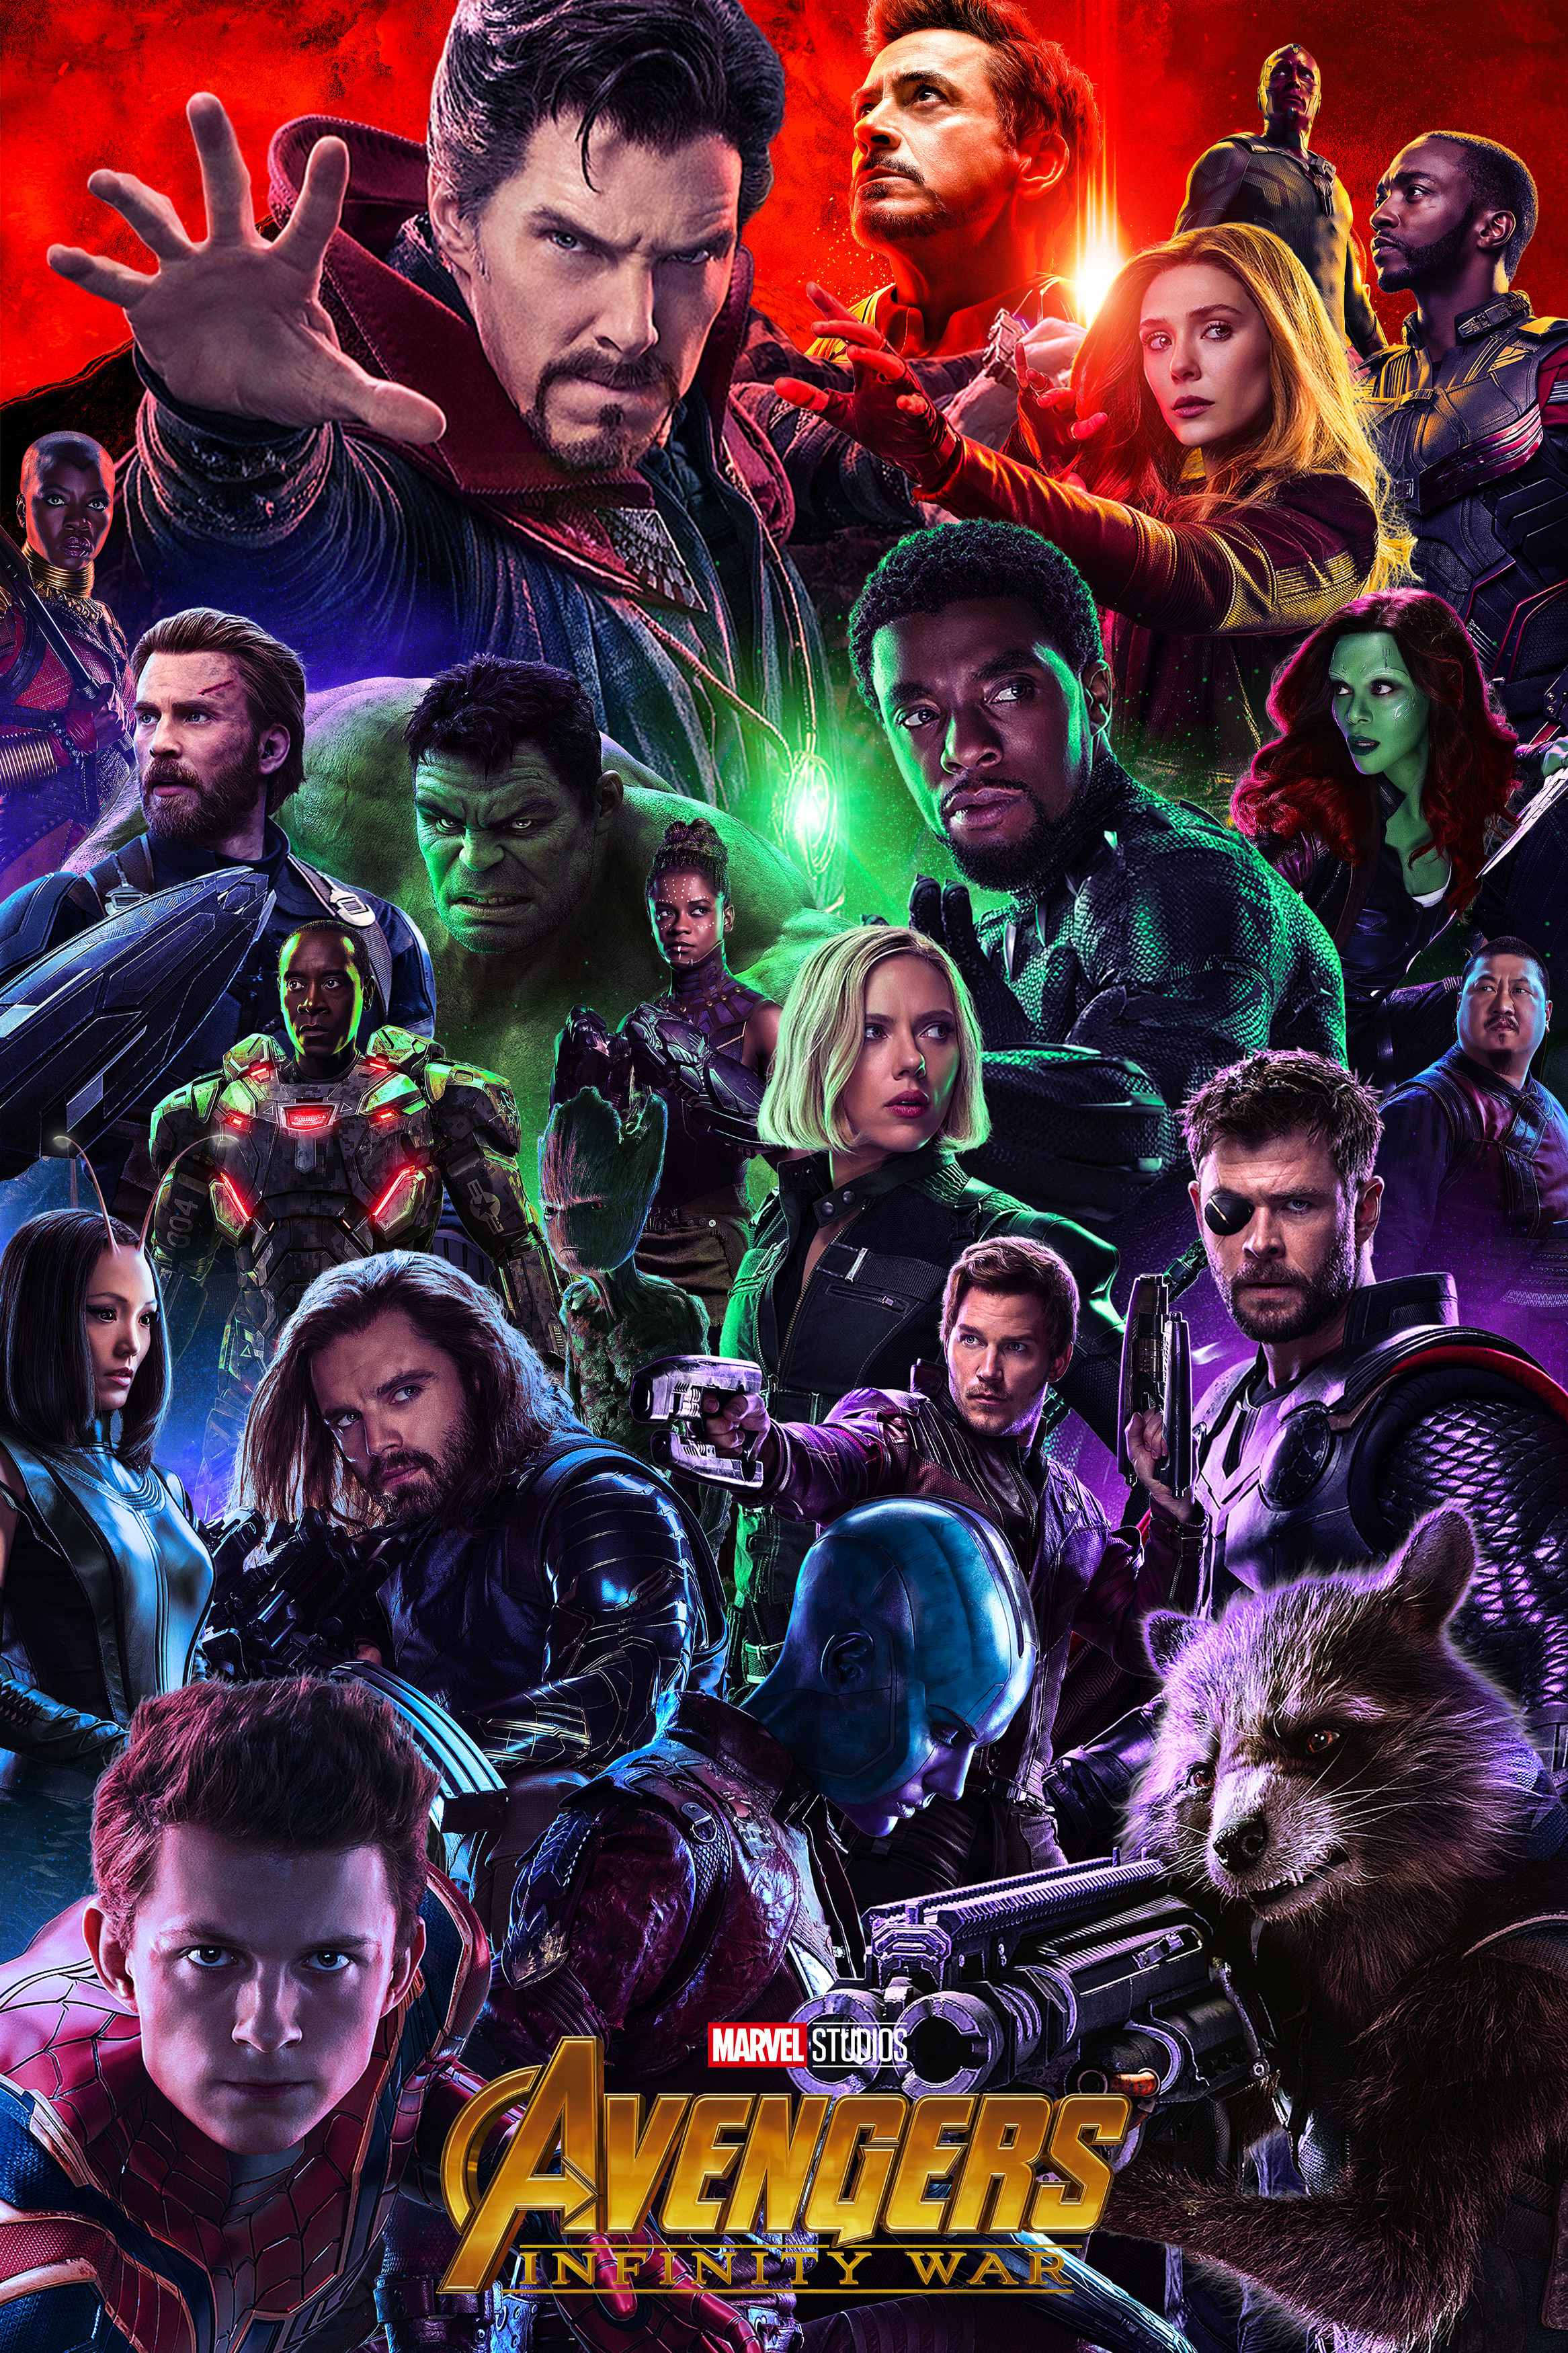 Avengers Infinity War Alternate Movie Poster featuring the entire cast.